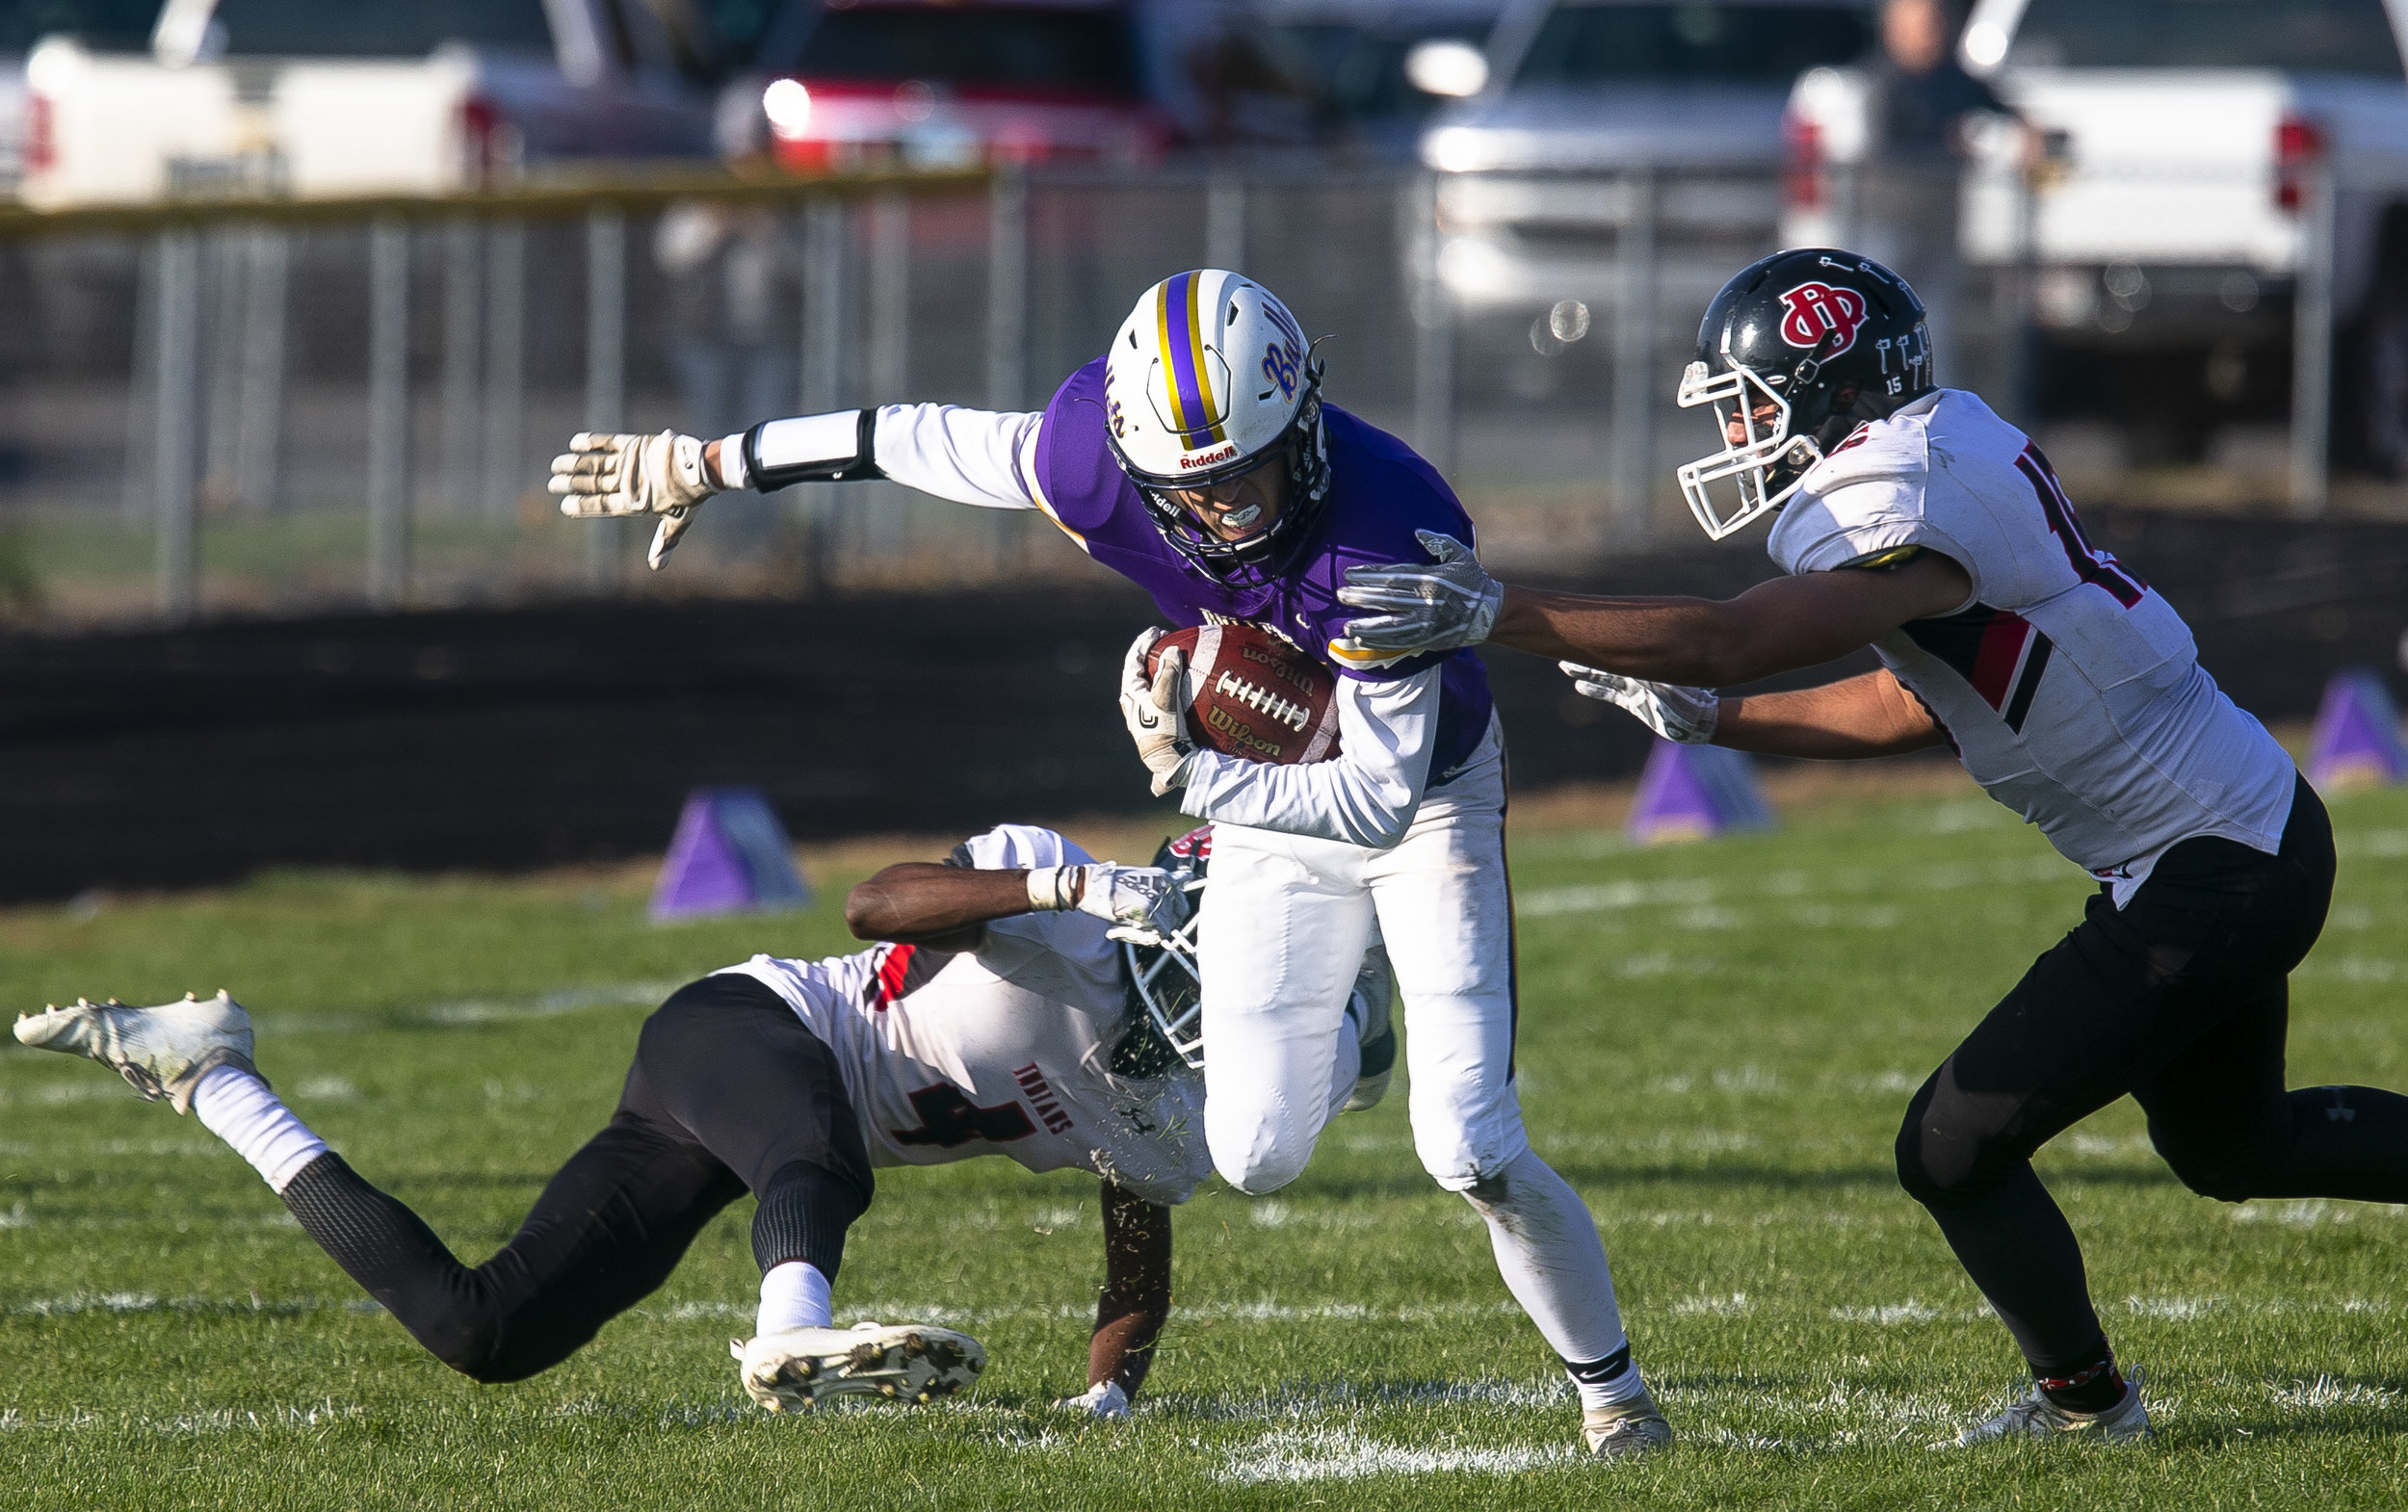 Williamsville's Bryce Newton struggles to get away from DuQuoin's Braeden Pursell during the Class 3A playoff game Saturday, Oct. 27, 2018 at Paul Jenkins Field in Springfield, Ill. [Rich Saal/The State Journal-Register]